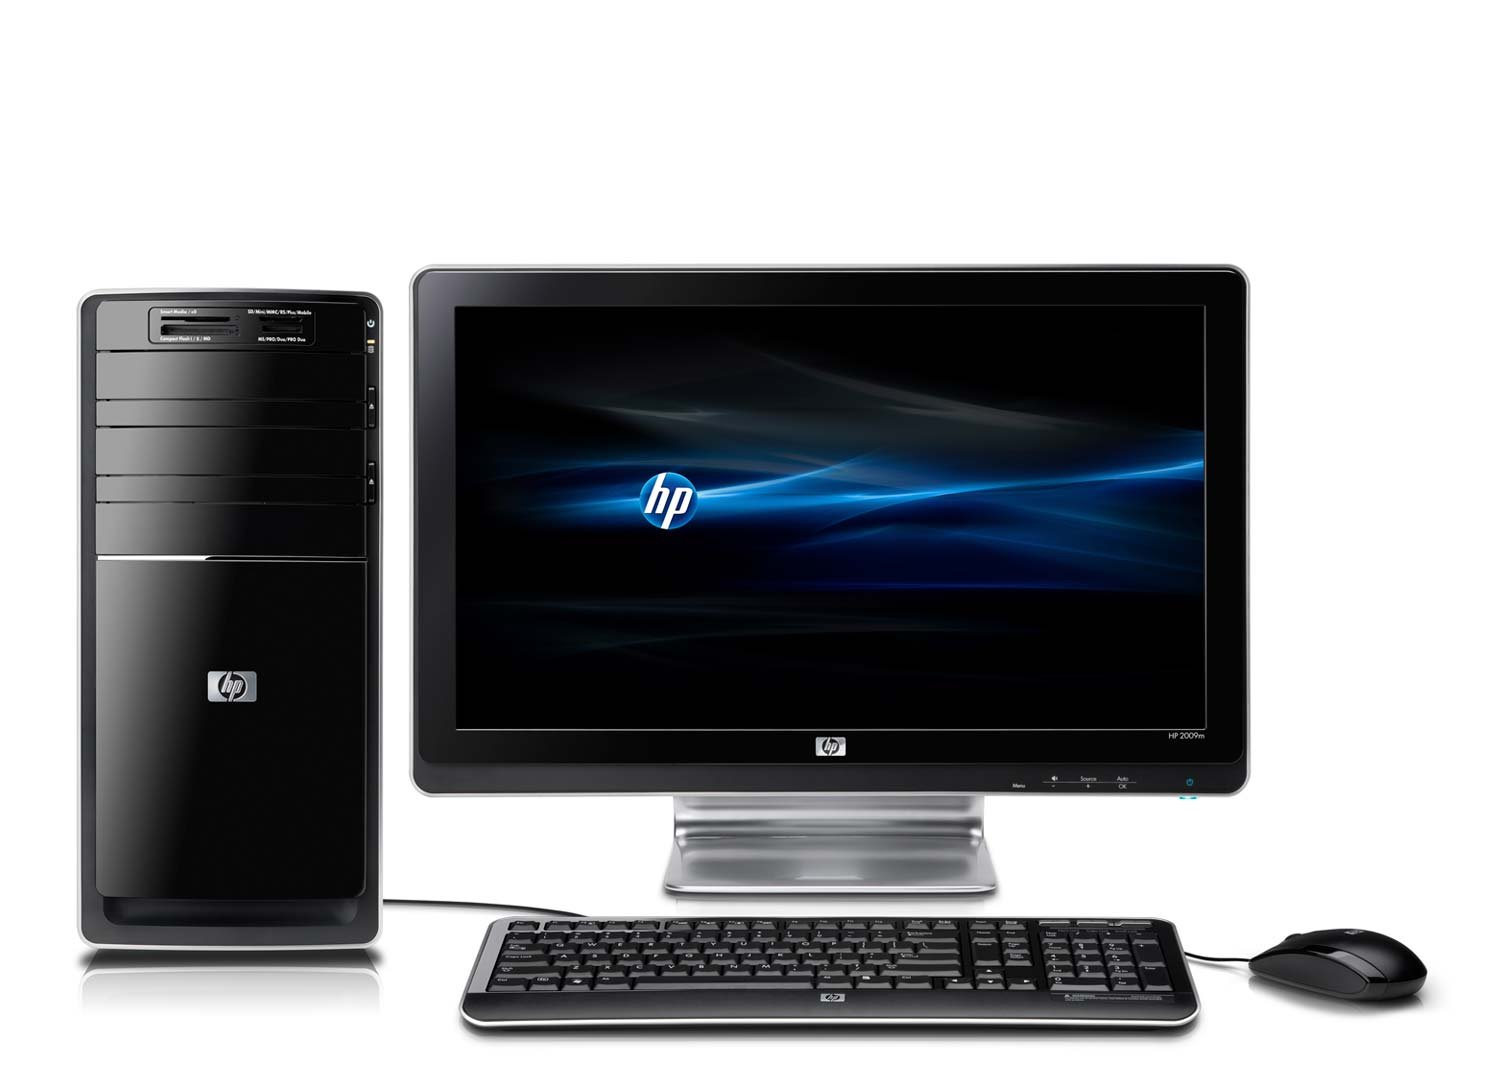 HP Pavilion p6320f PC Front View